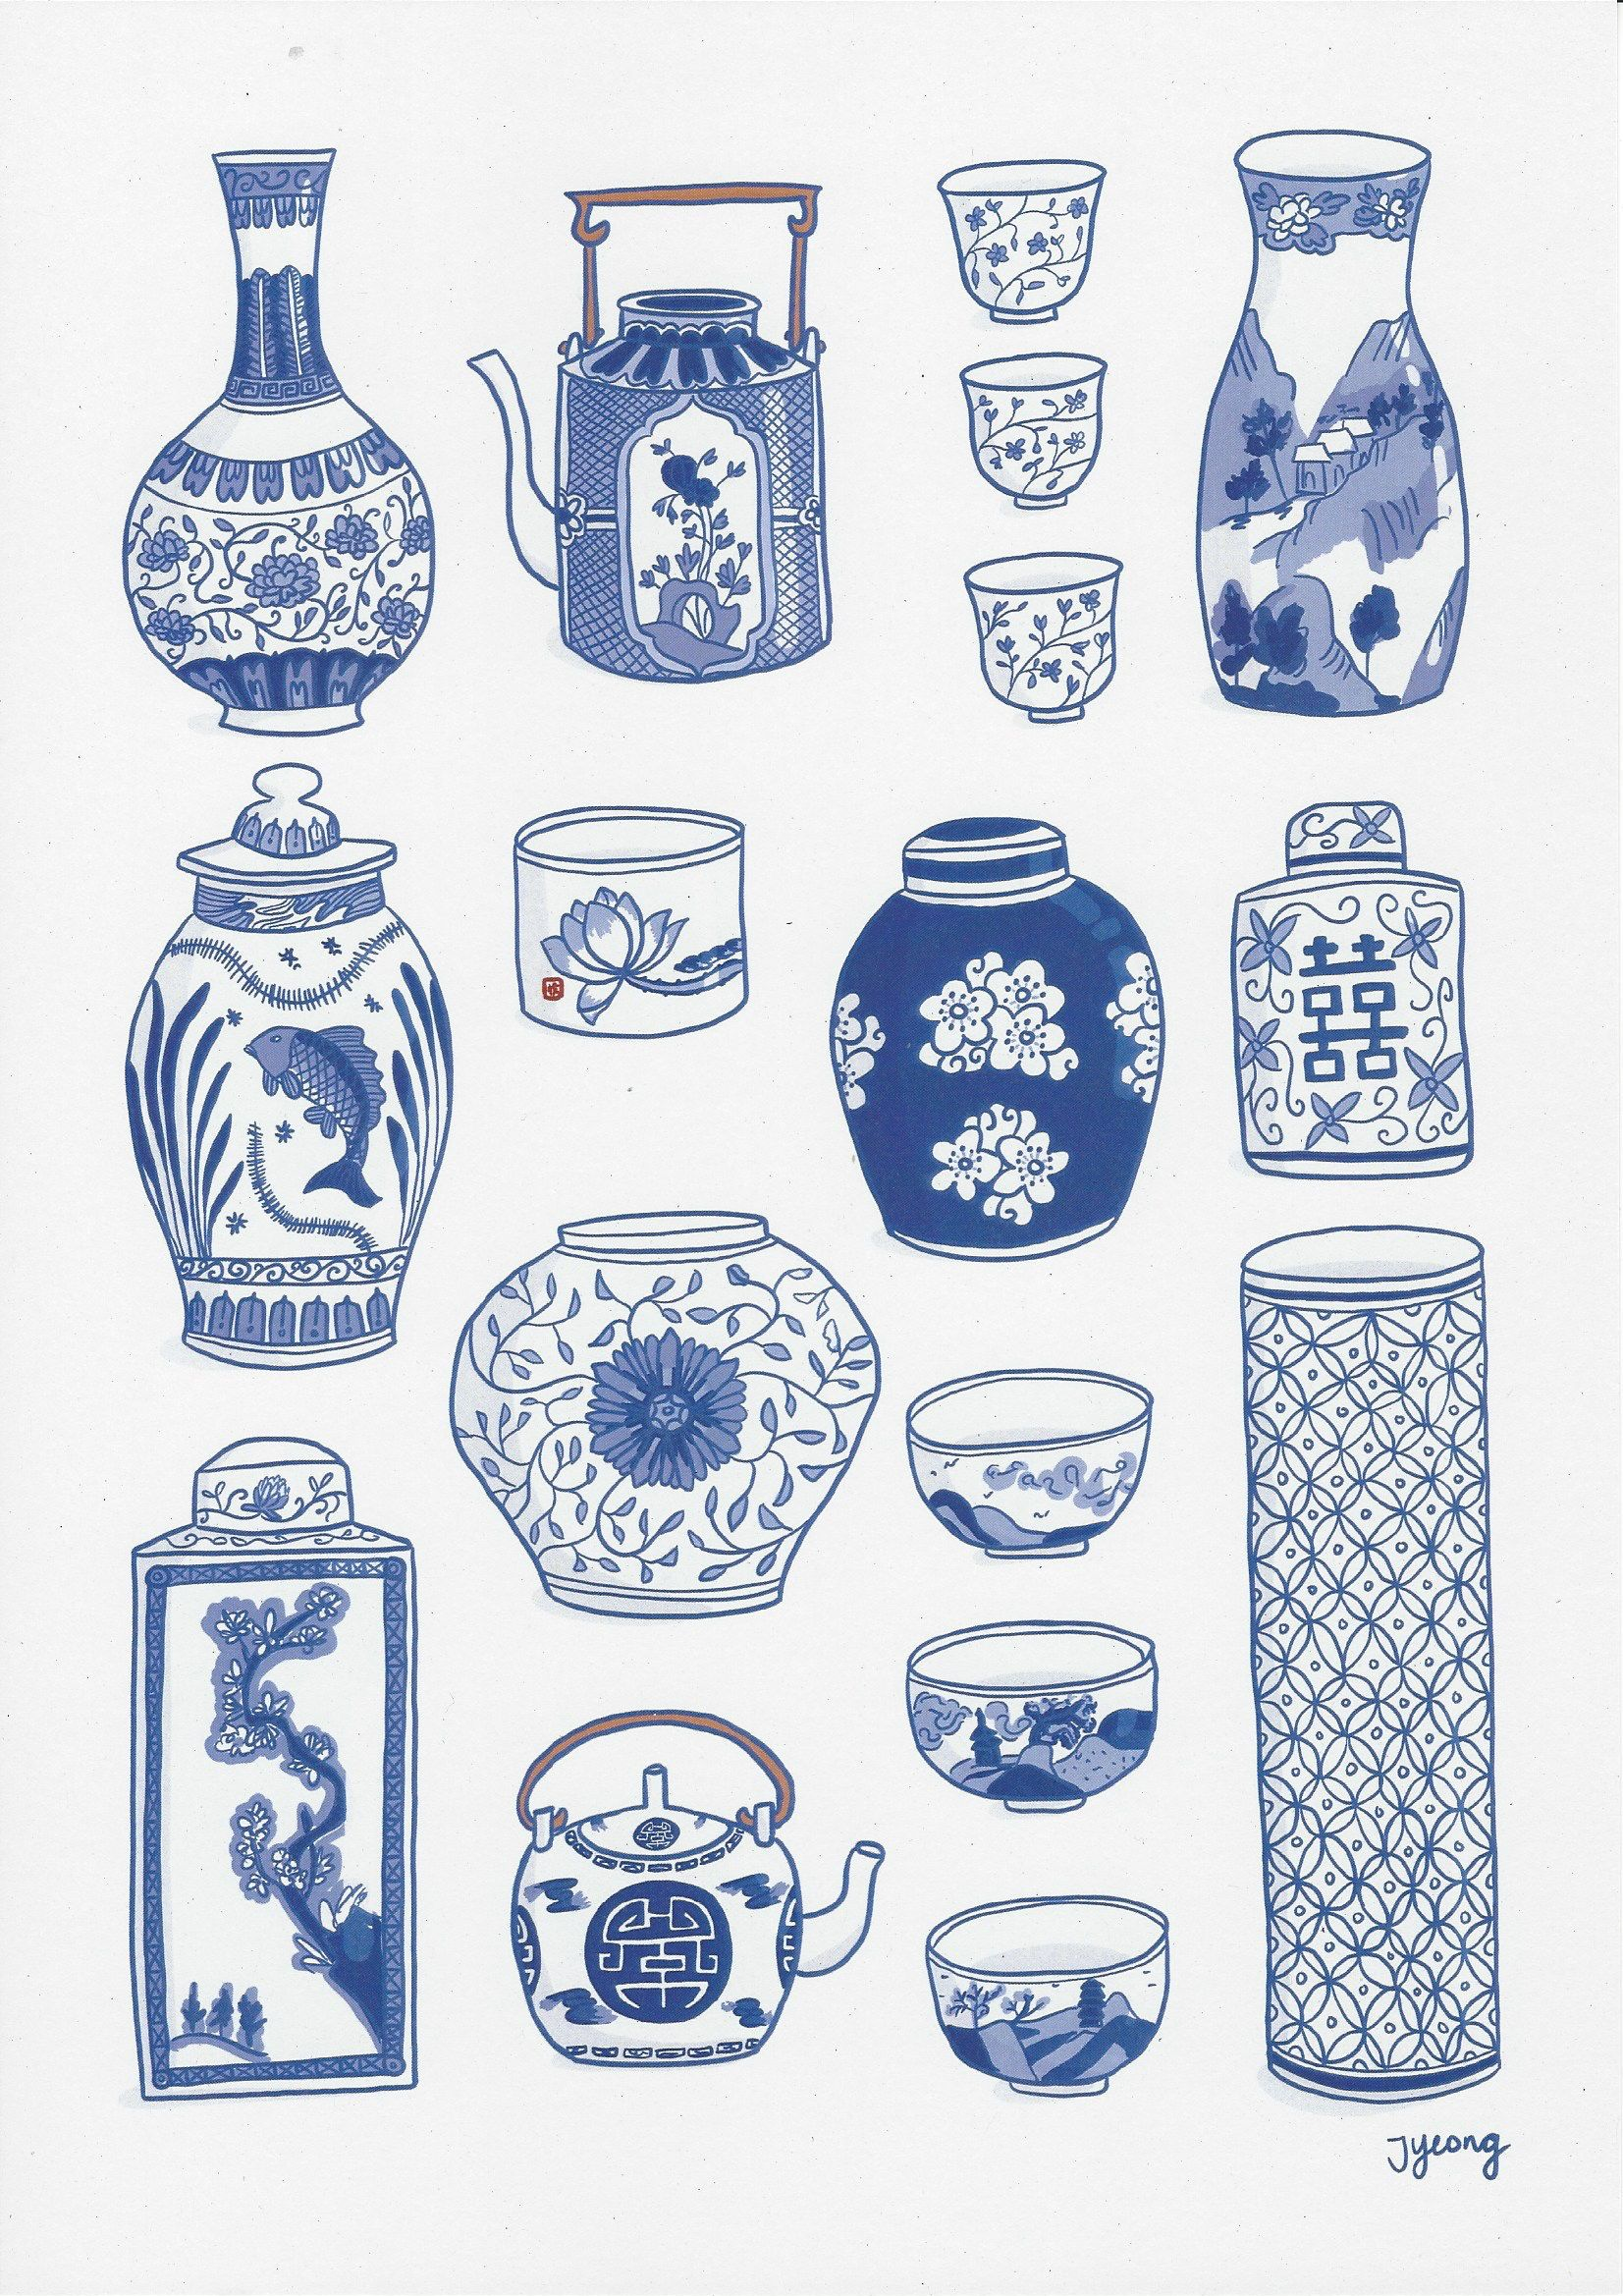 Blue and White Chinese Porcelain Collection Art Print A4